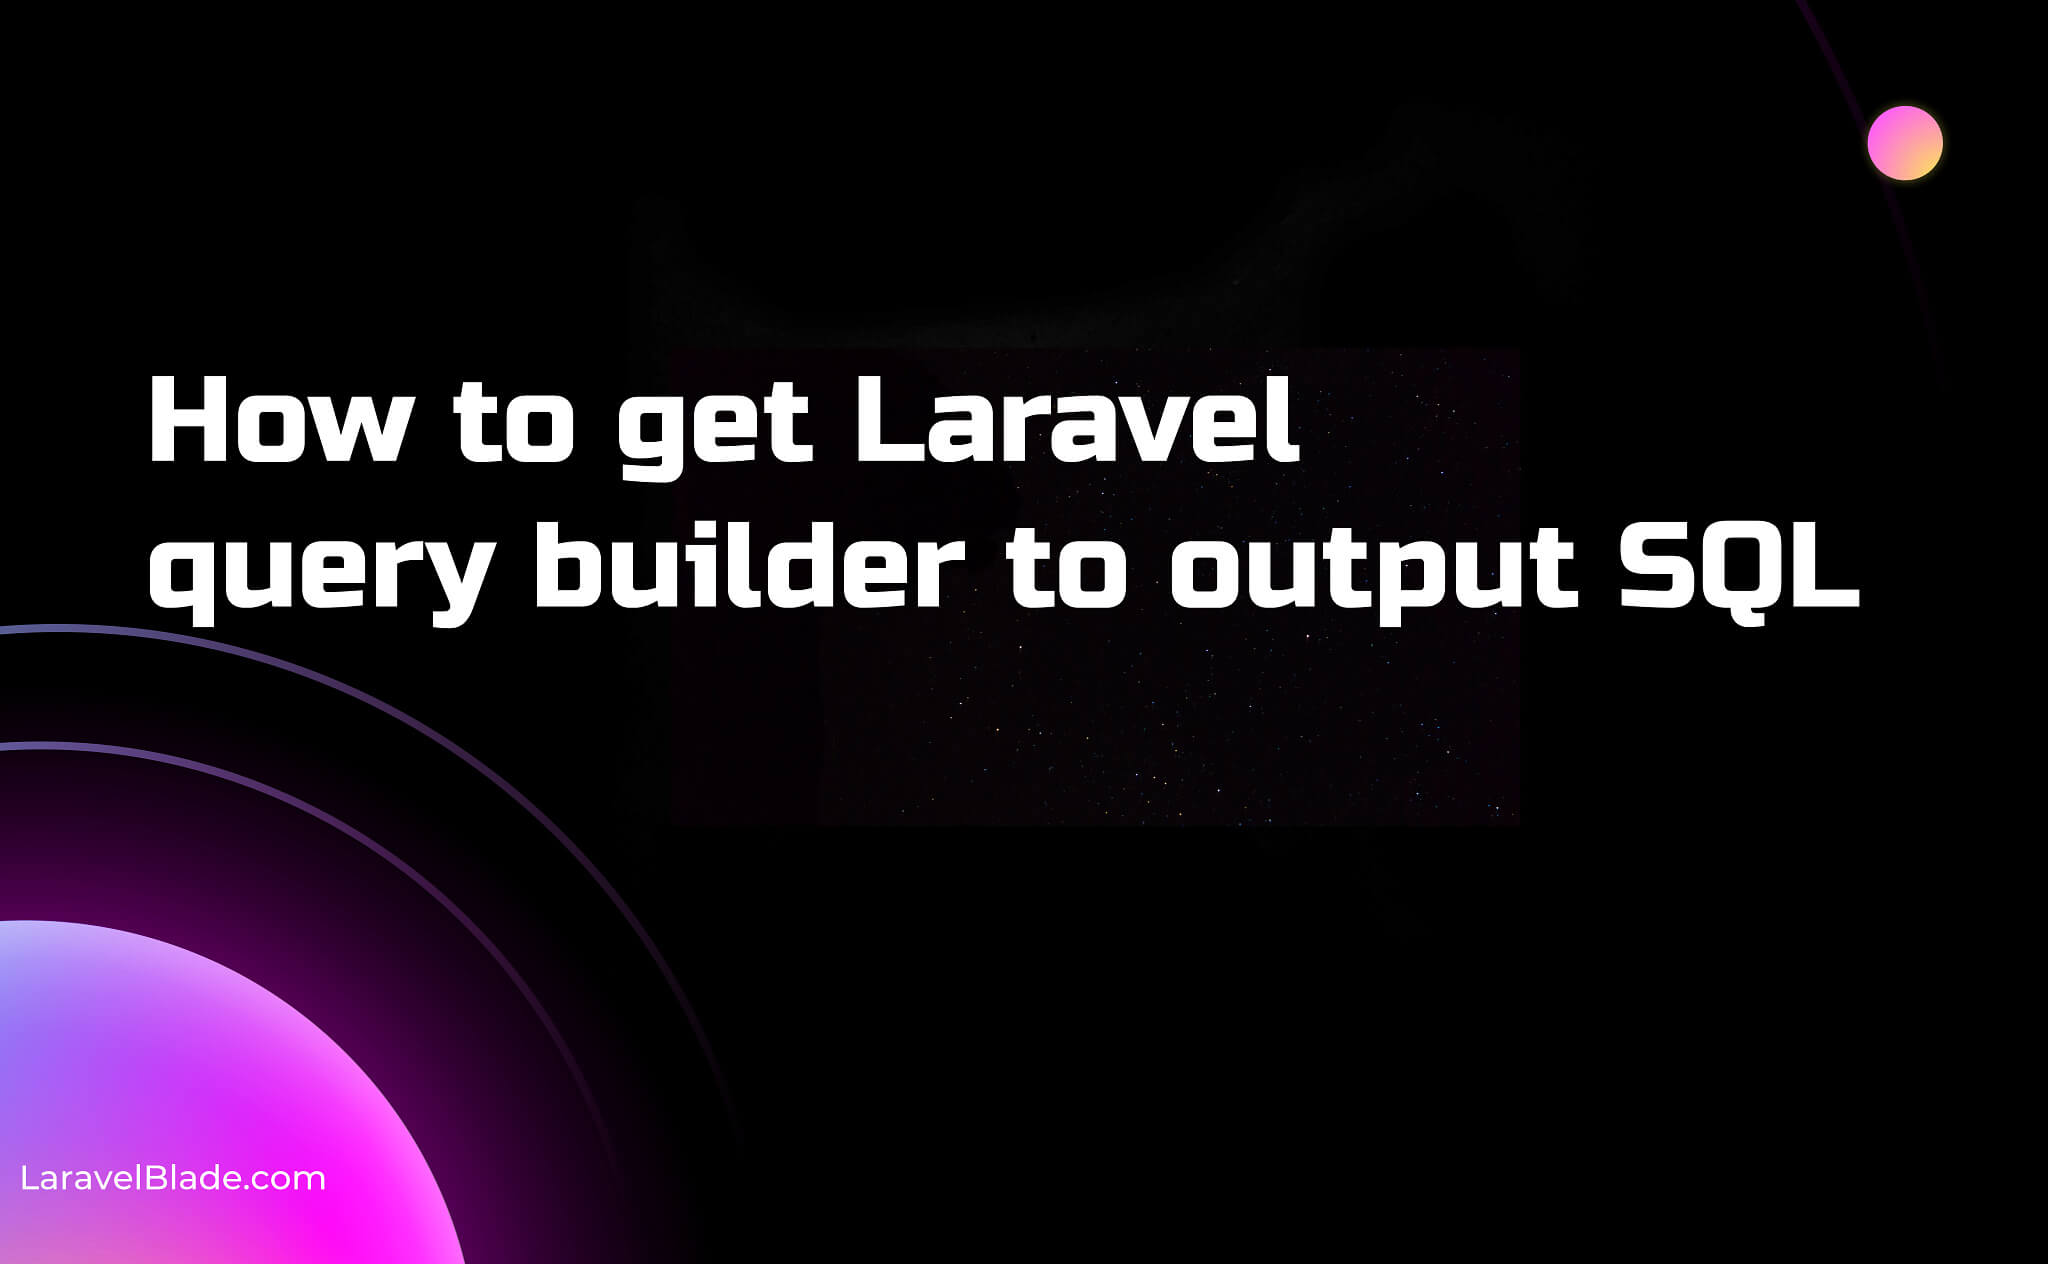 How to get Laravel query builder to output SQL